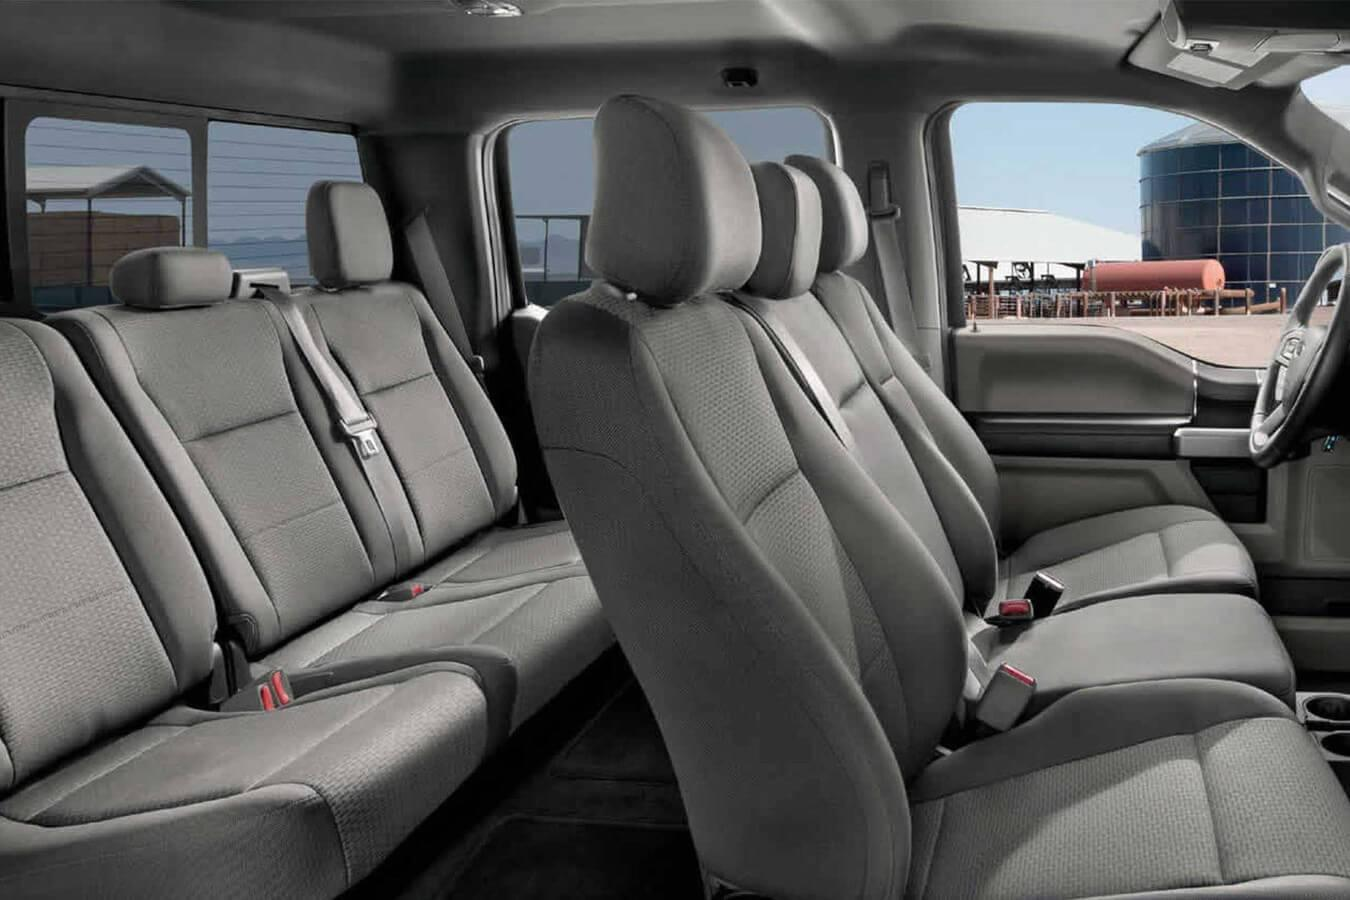 Nissan Columbus Ohio >> 2017 Ford F 150 Xlt Interior | Decoratingspecial.com